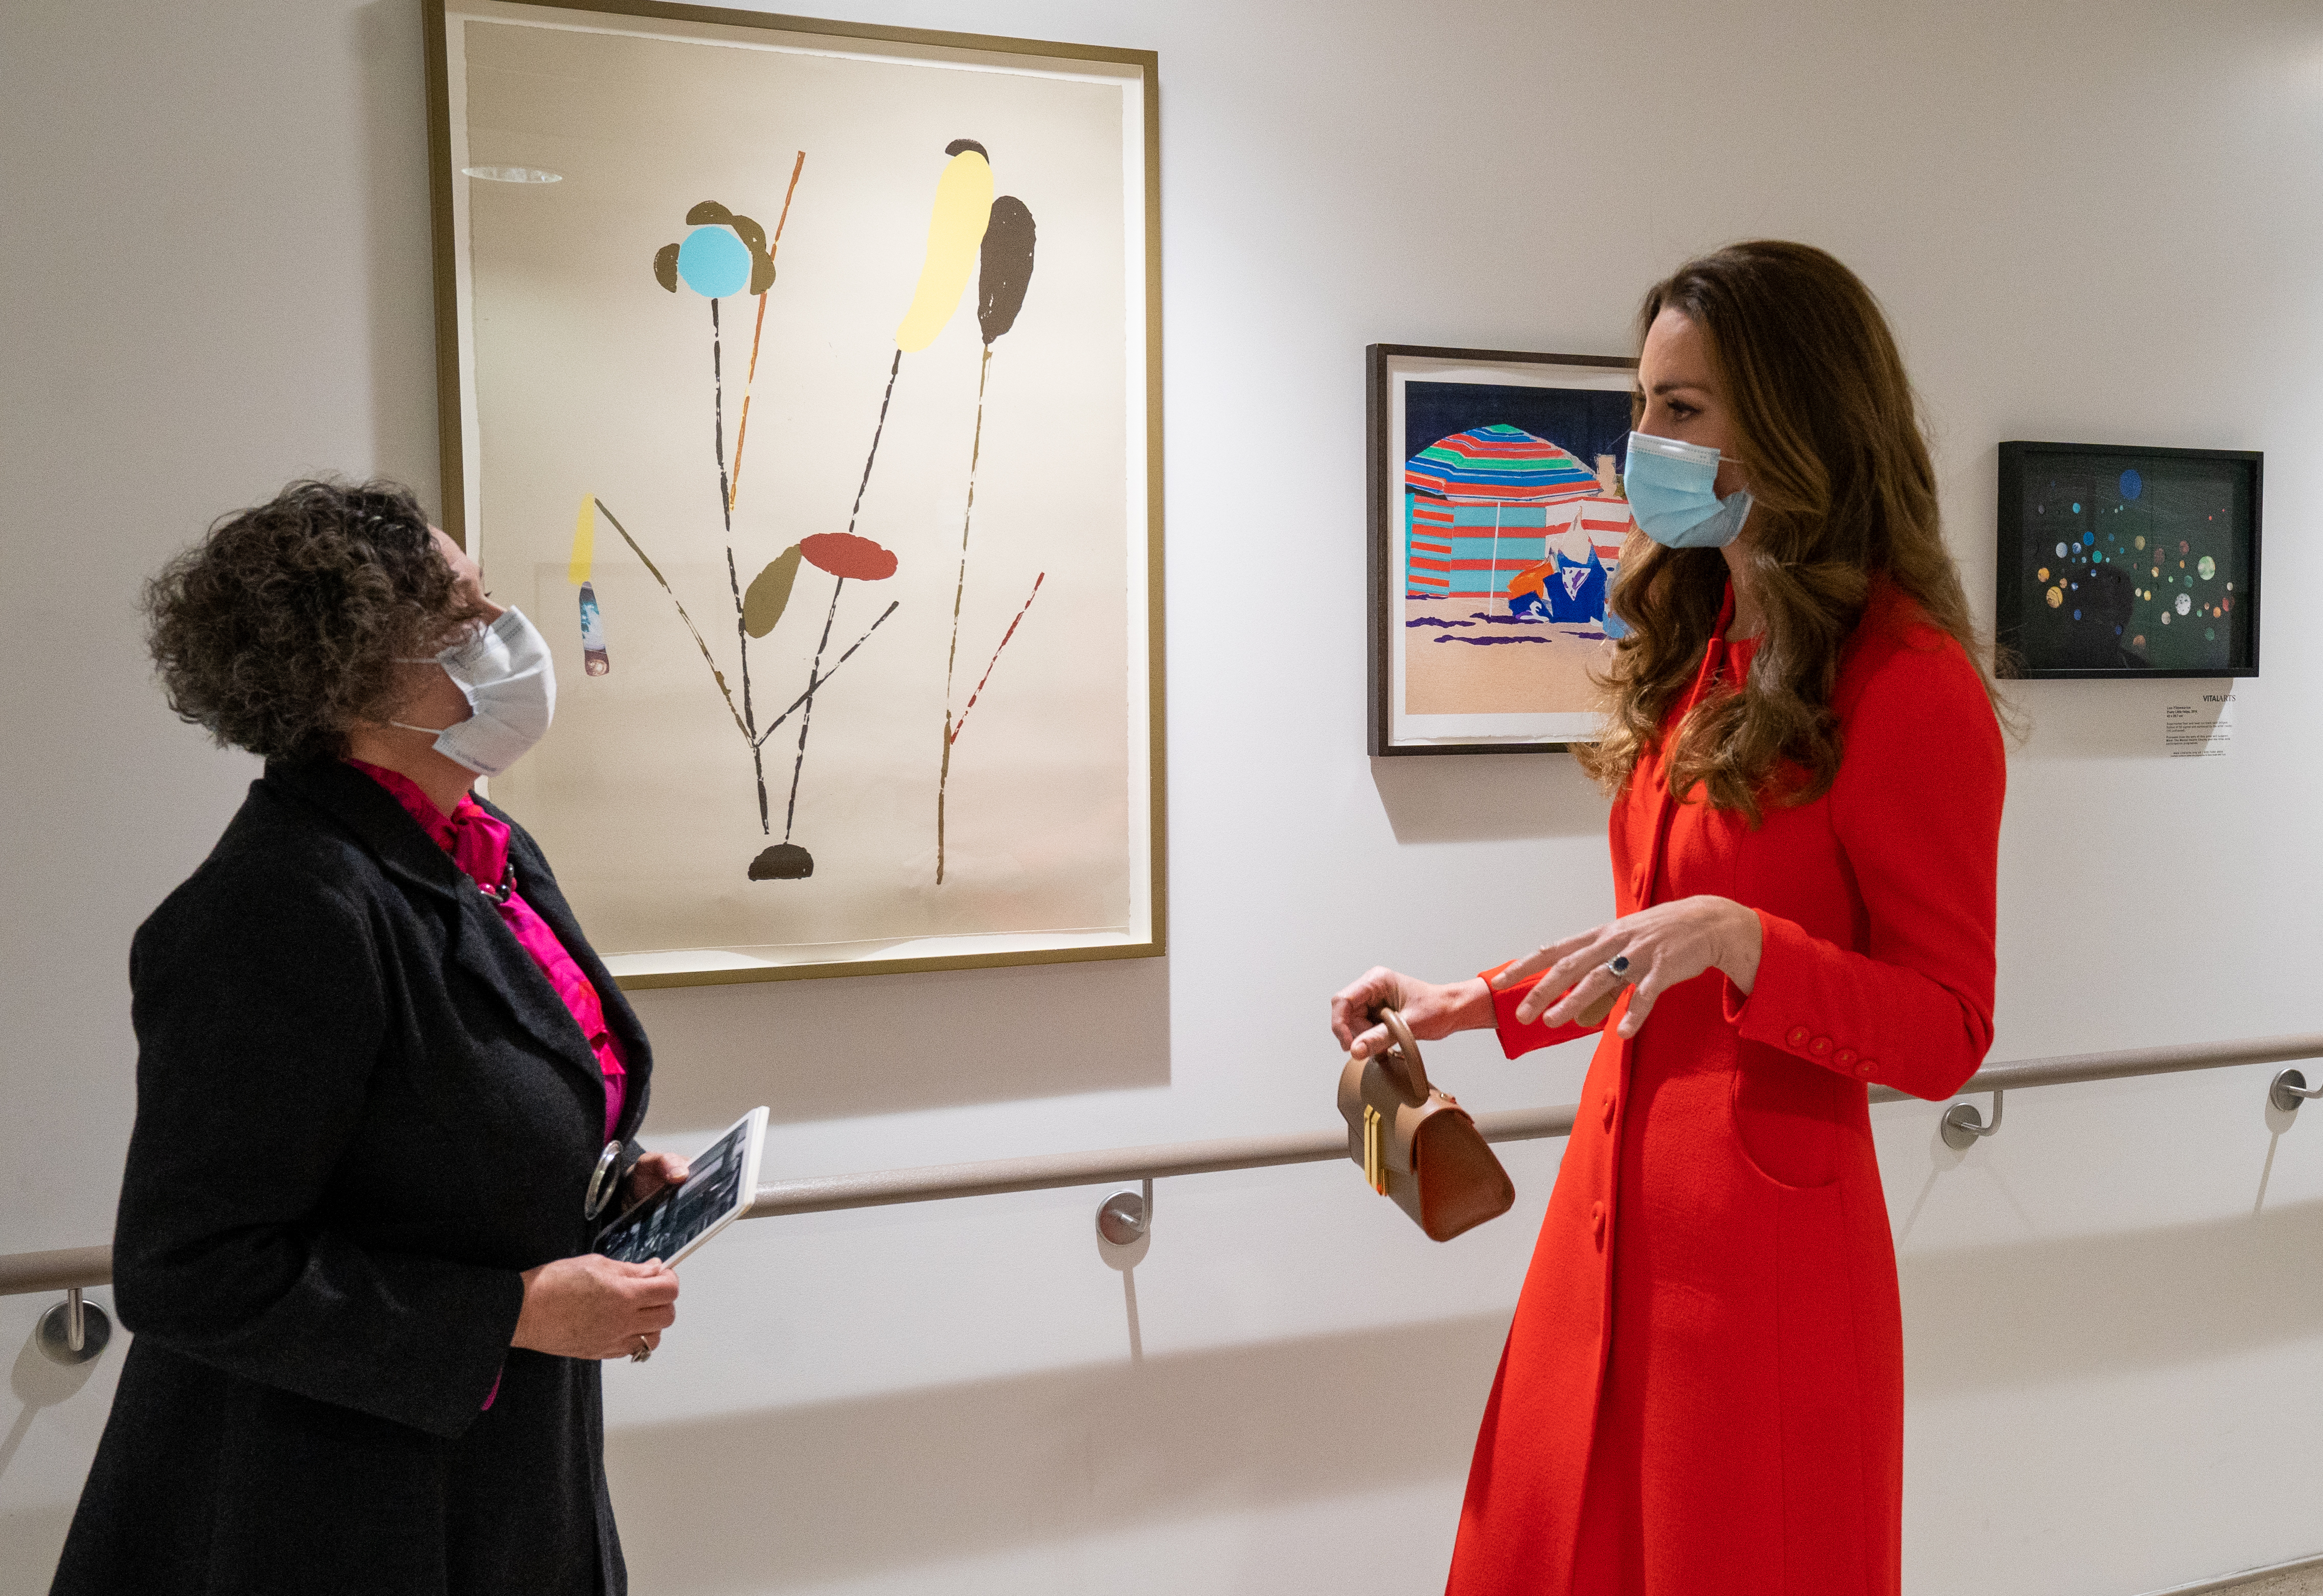 <p>The Duchess of Cambridge with Catsou Roberts, Director of Vital Arts for Barts Health NHS Trust, during a visit to the Royal London Hospital in Whitechapel, east London, to mark the publication of the Hold Still book. Picture date: Friday May 7, 2021.</p>